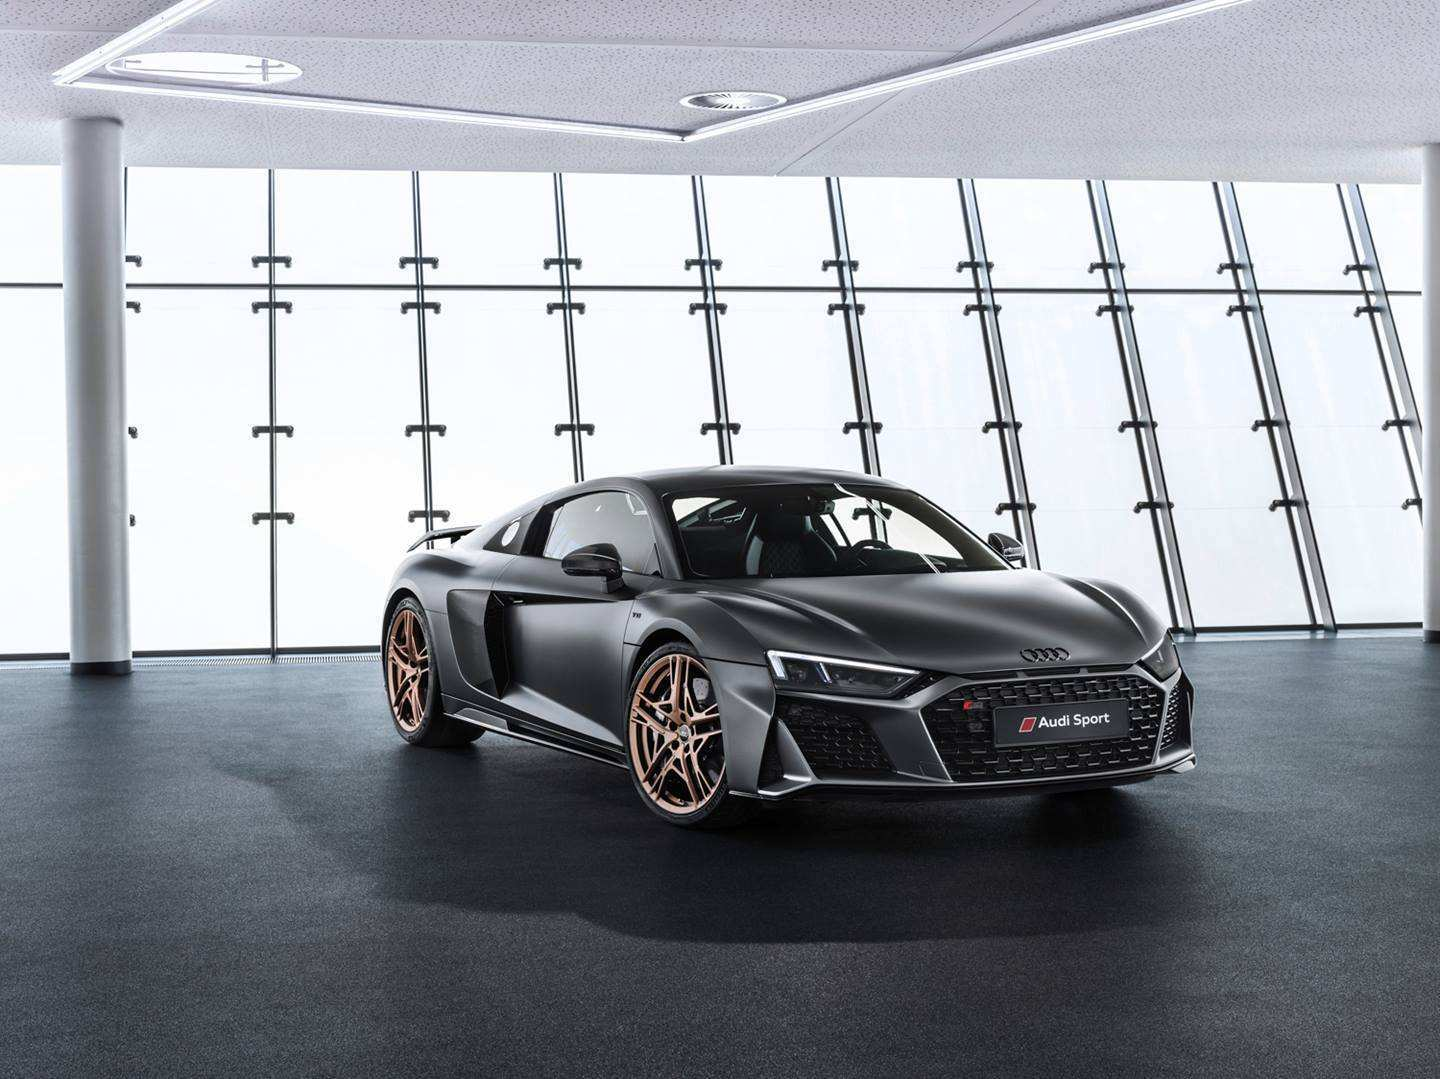 91 Great Pictures Of 2020 Audi R8 Picture for Pictures Of 2020 Audi R8